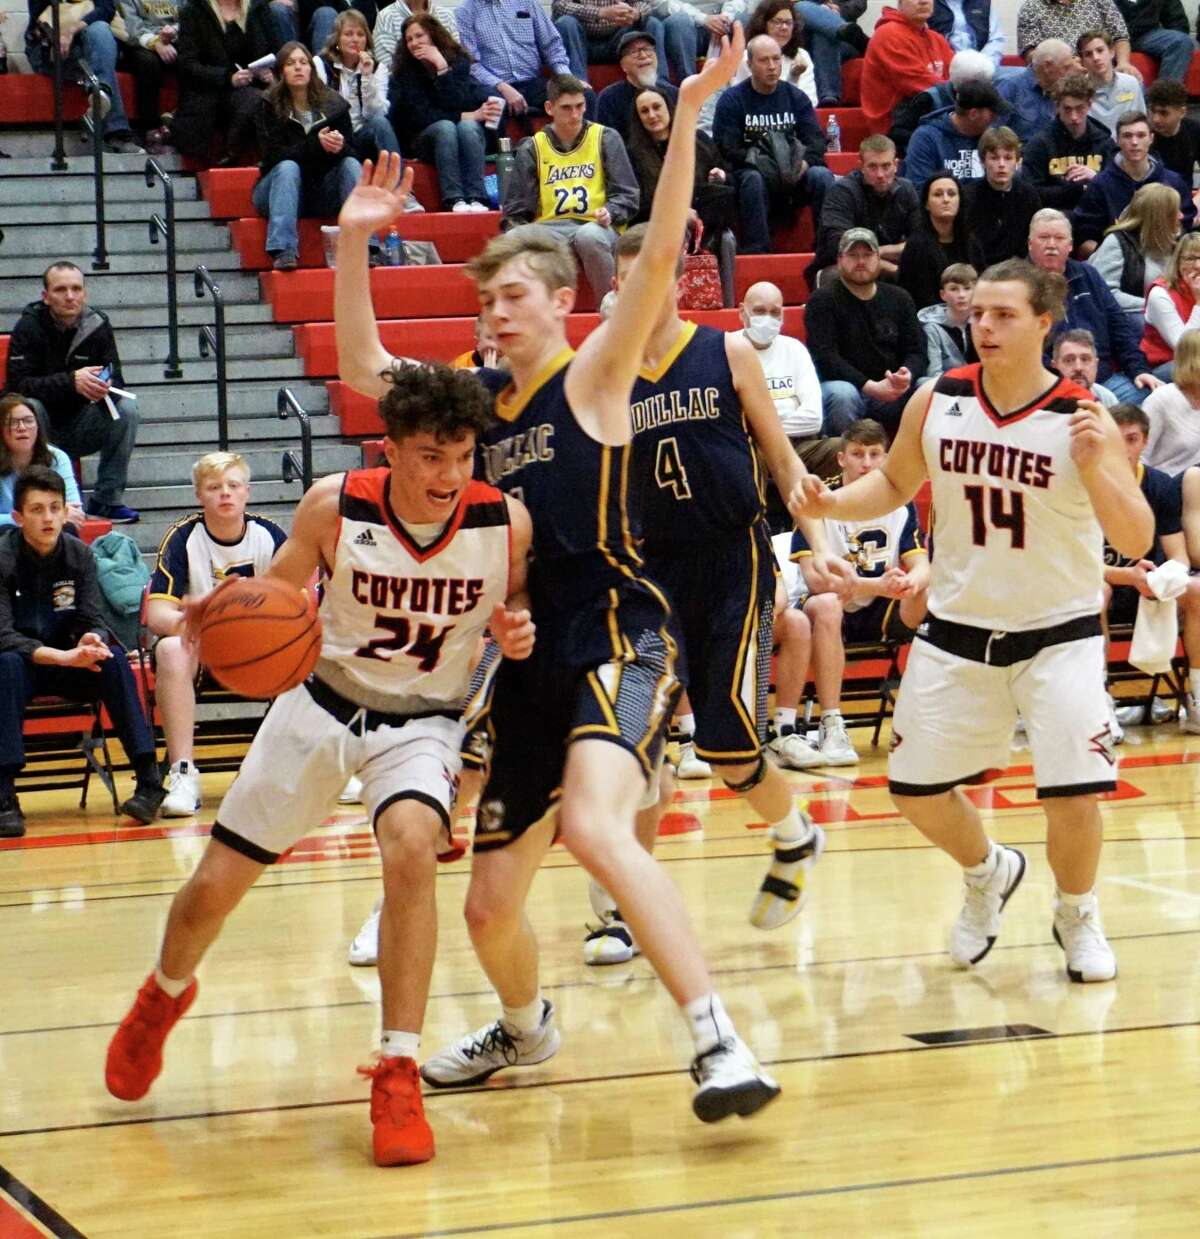 Reed City freshman Xavier Allen battles to stay inbounds along the baseline during the Coyotes' 76-34 loss to Cadillac on Jan. 29 at RCHS. (Herald file photo/Joe Judd)